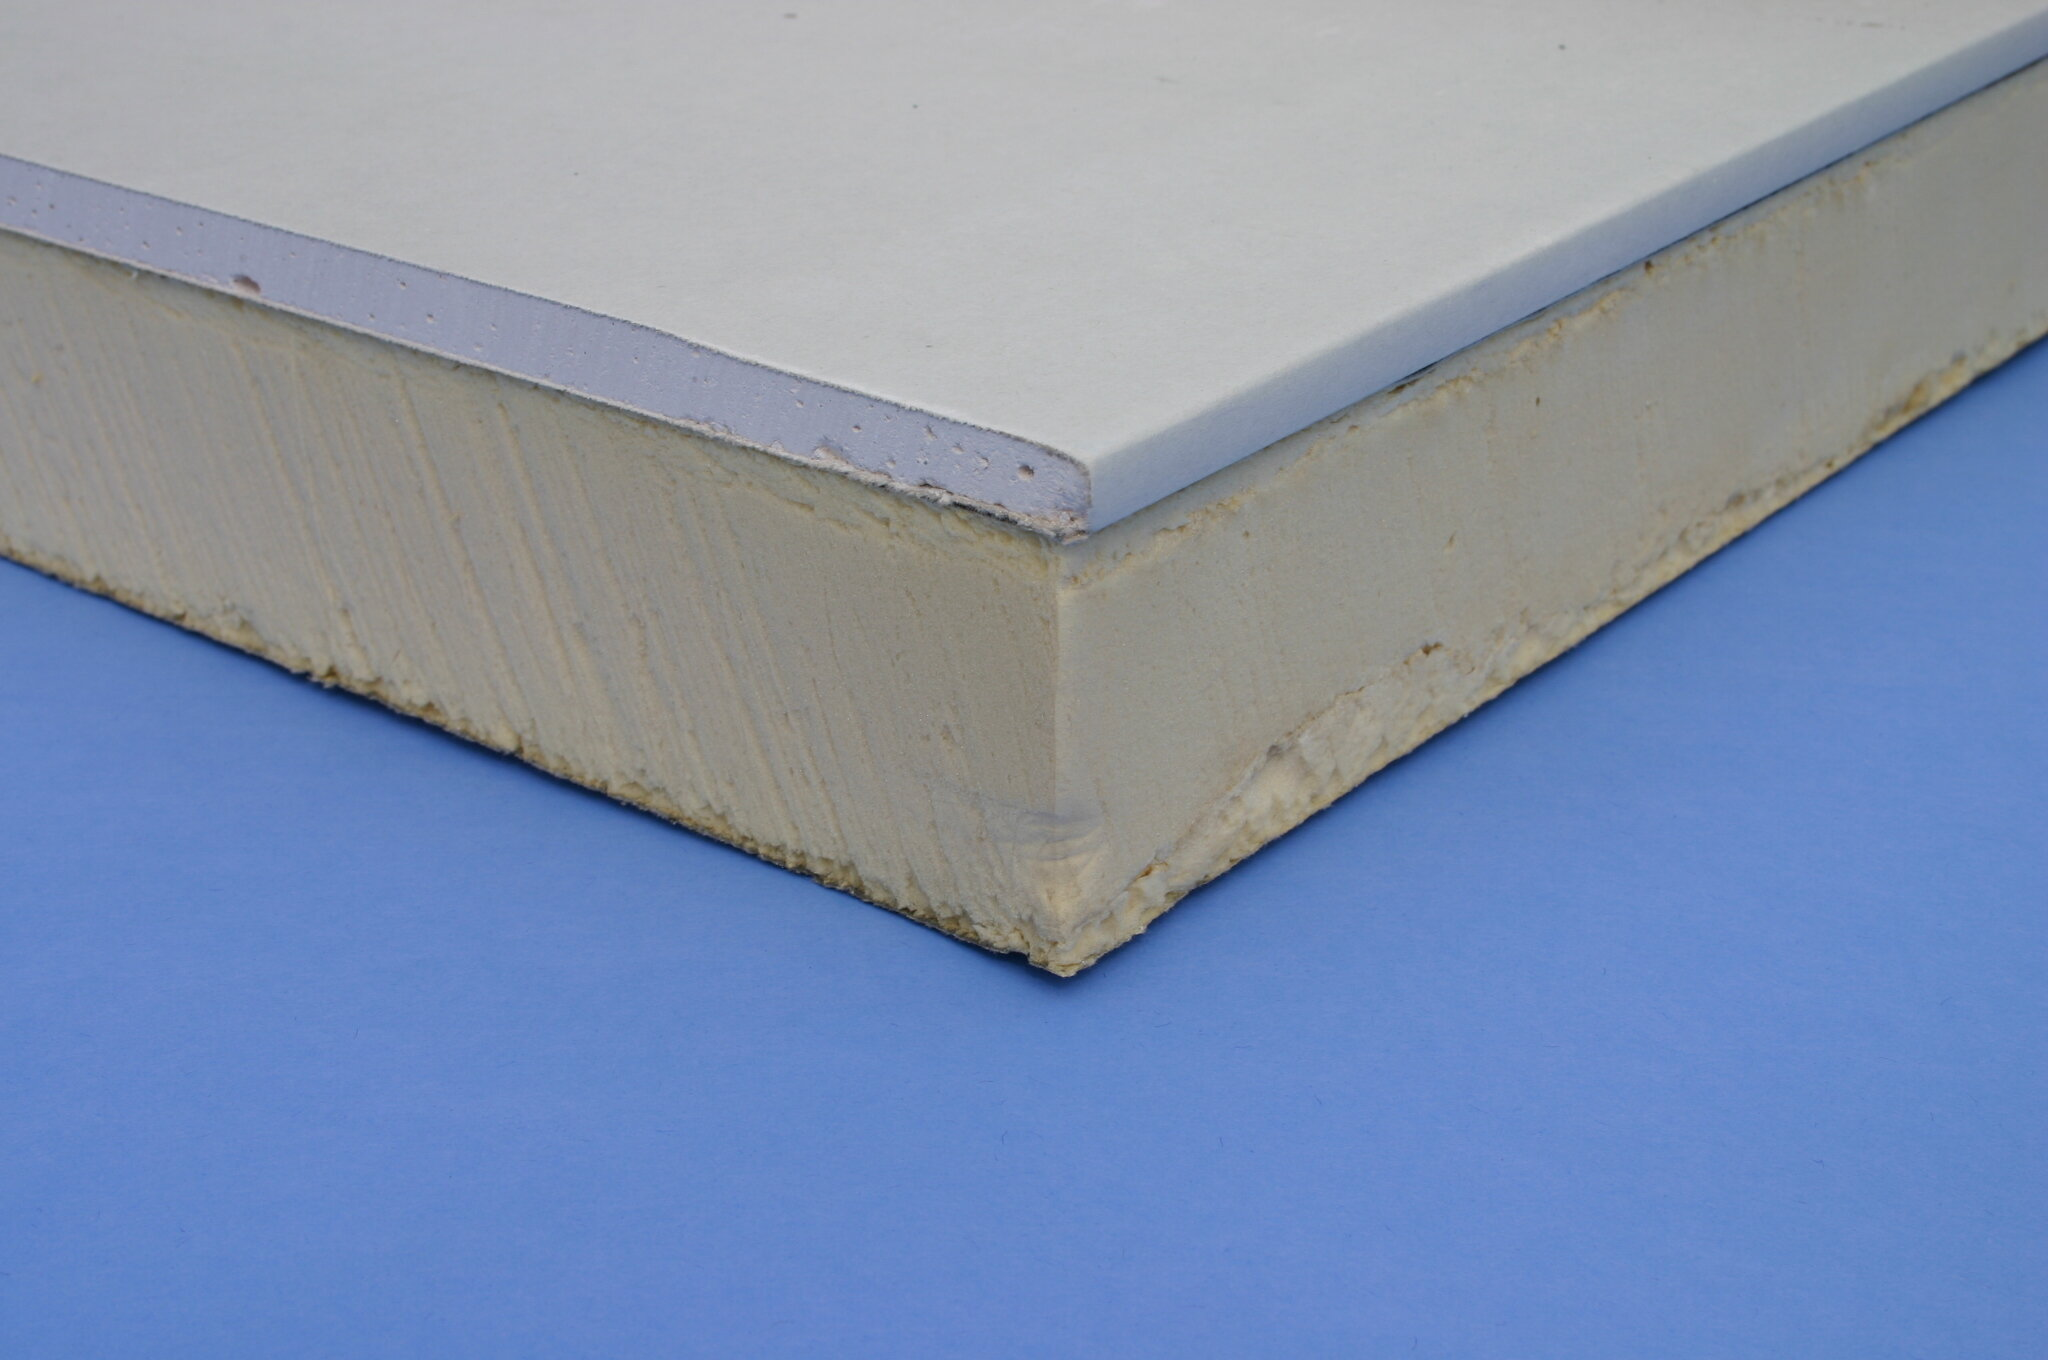 Xtratherm Insulated Plasterboard 73mm - 2438 x 1200mm